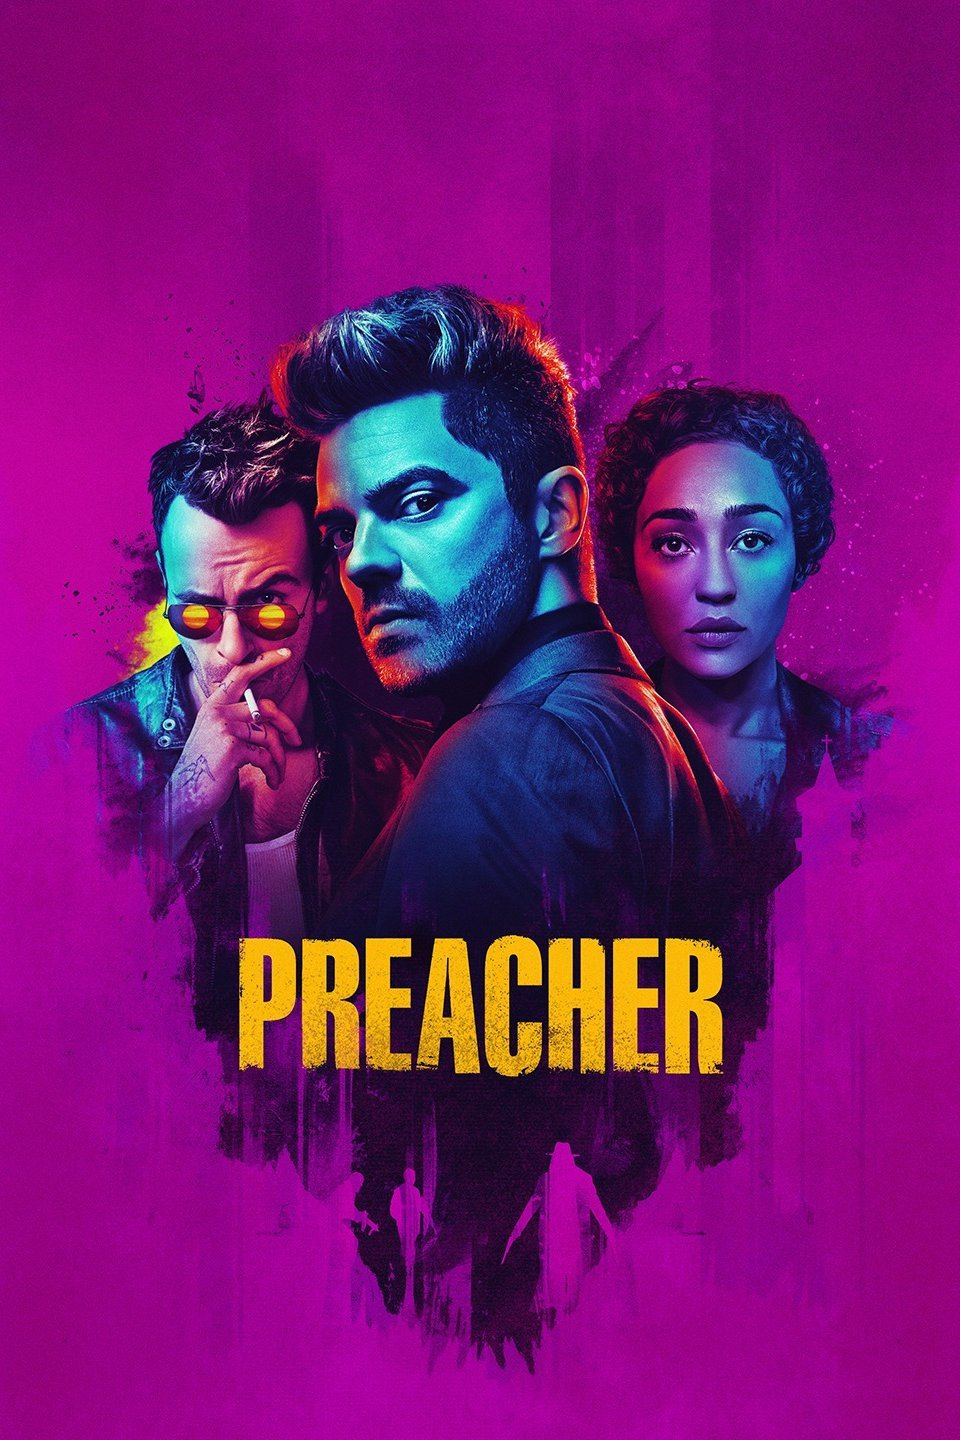 Preacher Season 2 Episode 2 Download HDTV 480p & 720p